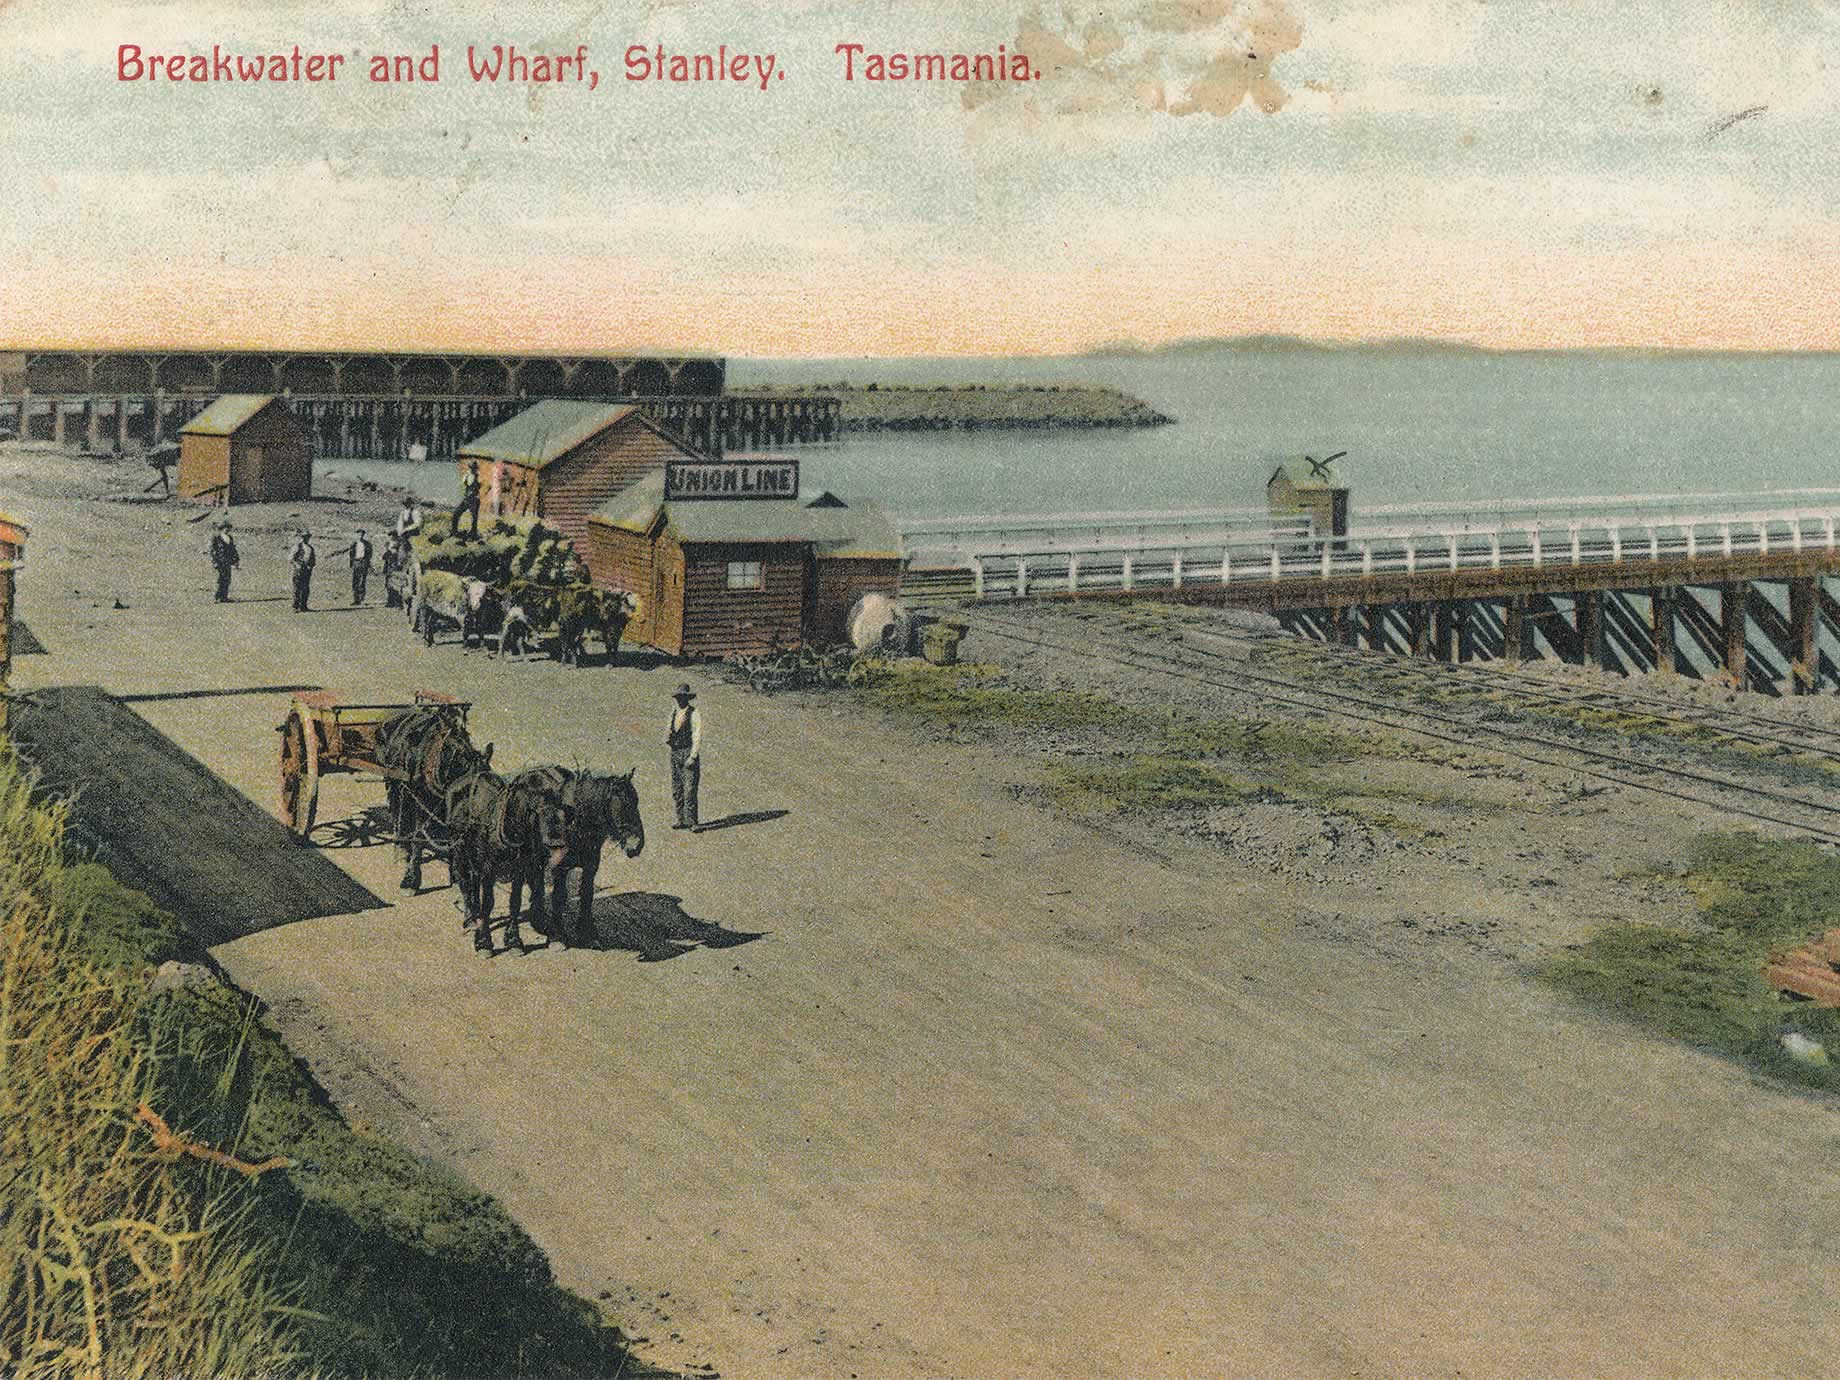 Breakwater and main wharf postcard from the base of The Nut